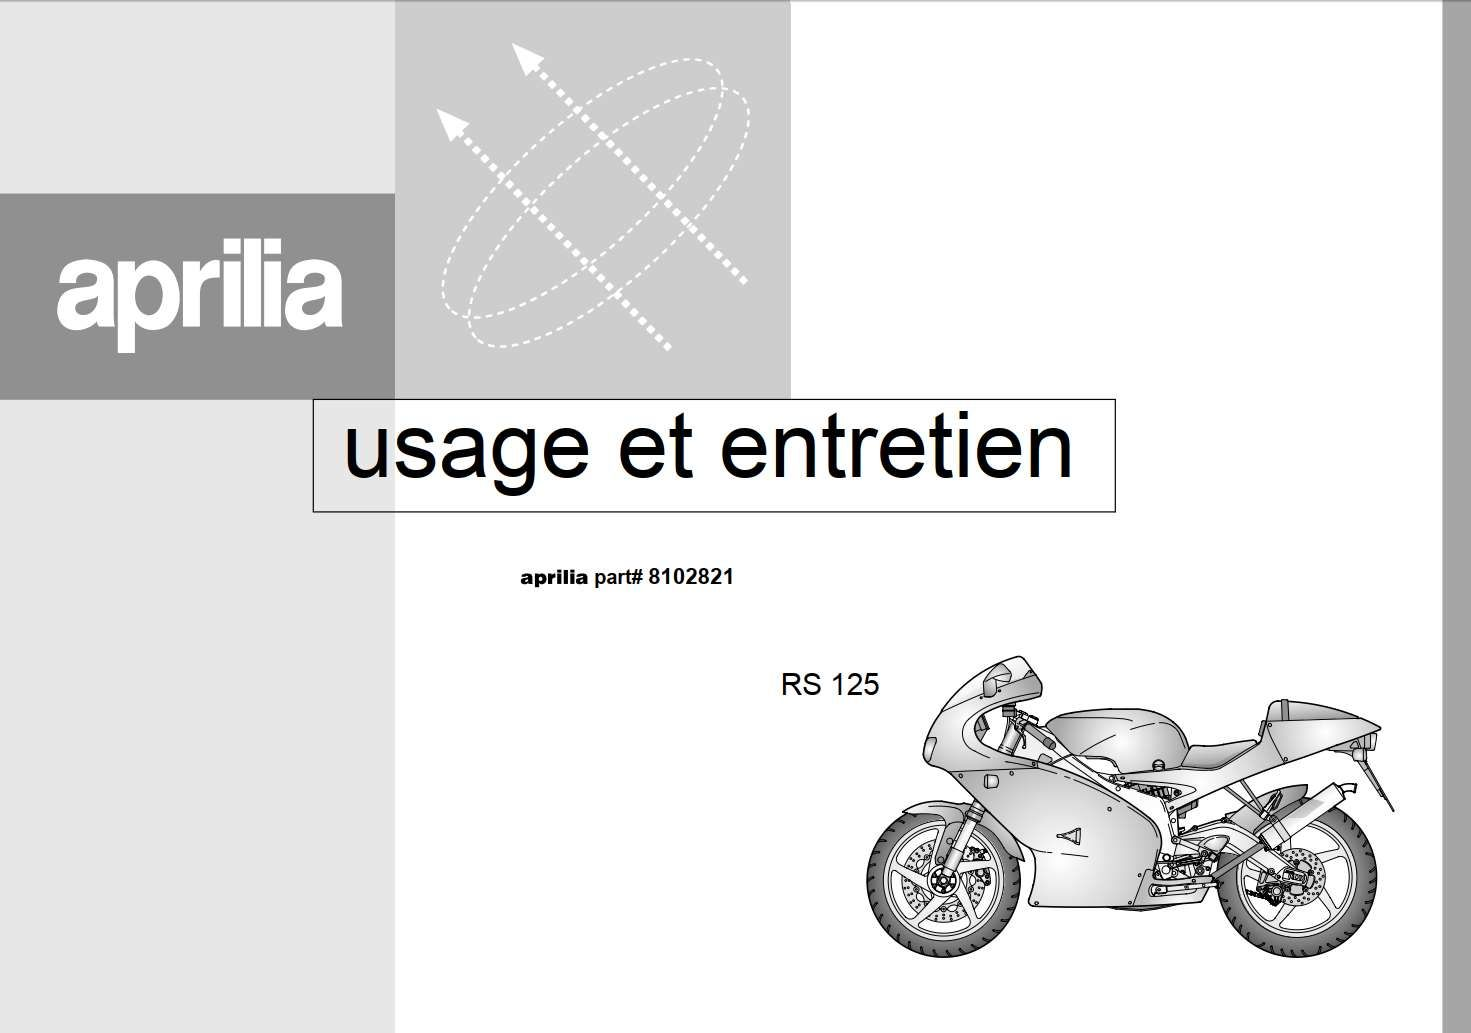 Aprilia Rs125 1999 Owner S Manual Has Been Published On Procarmanuals Com Https Procarmanuals Com Aprilia Rs125 1999 Owners Man Aprilia Manual Owners Manuals